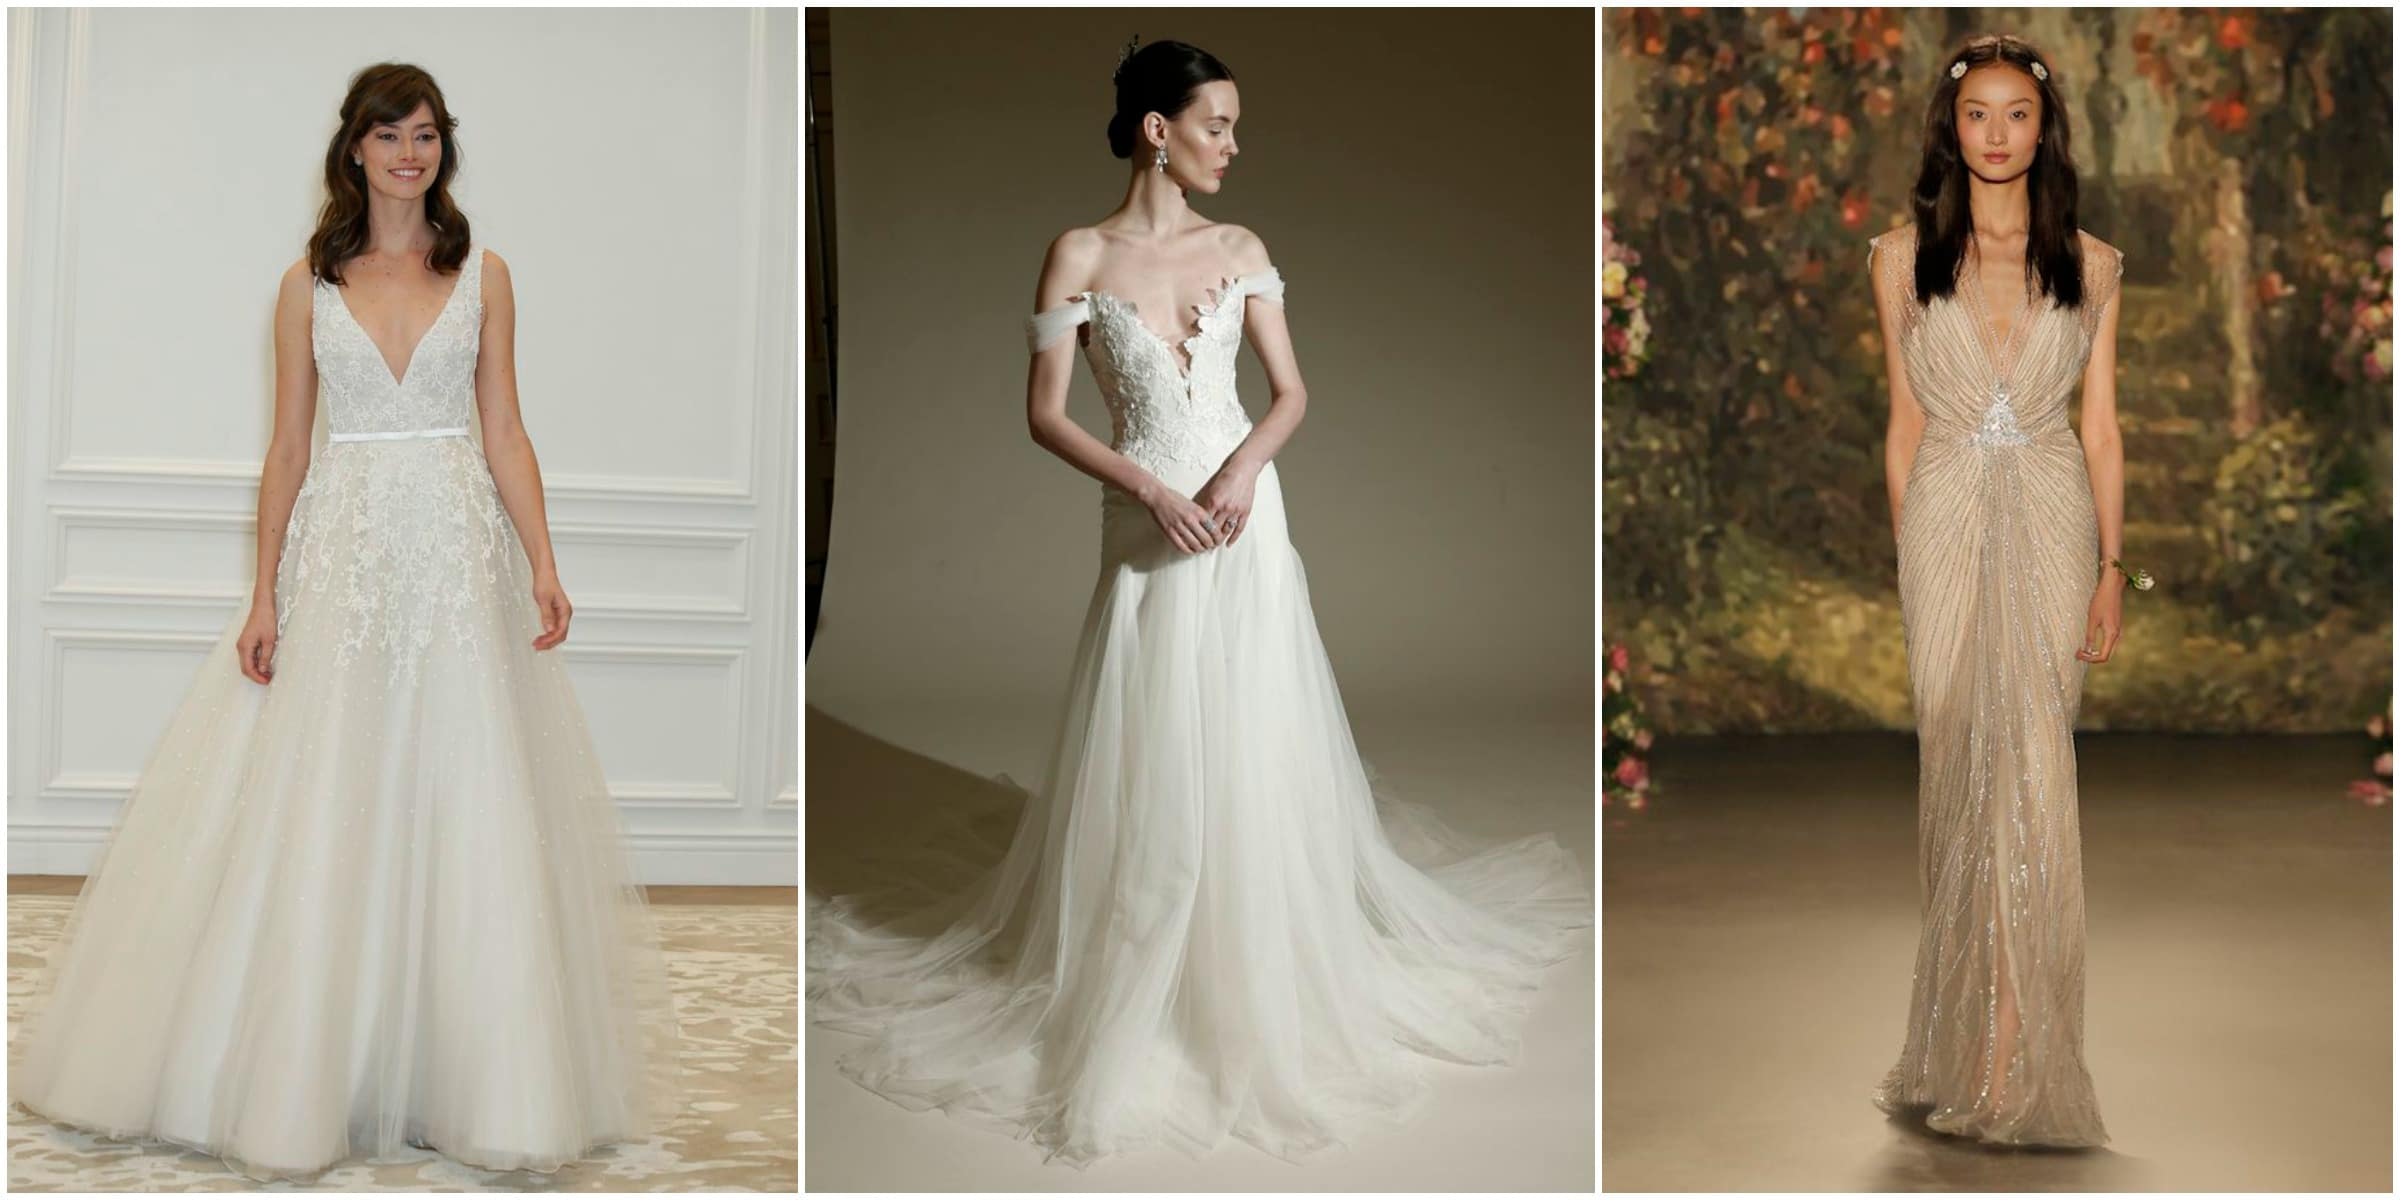 V-neck bridal trends 2016